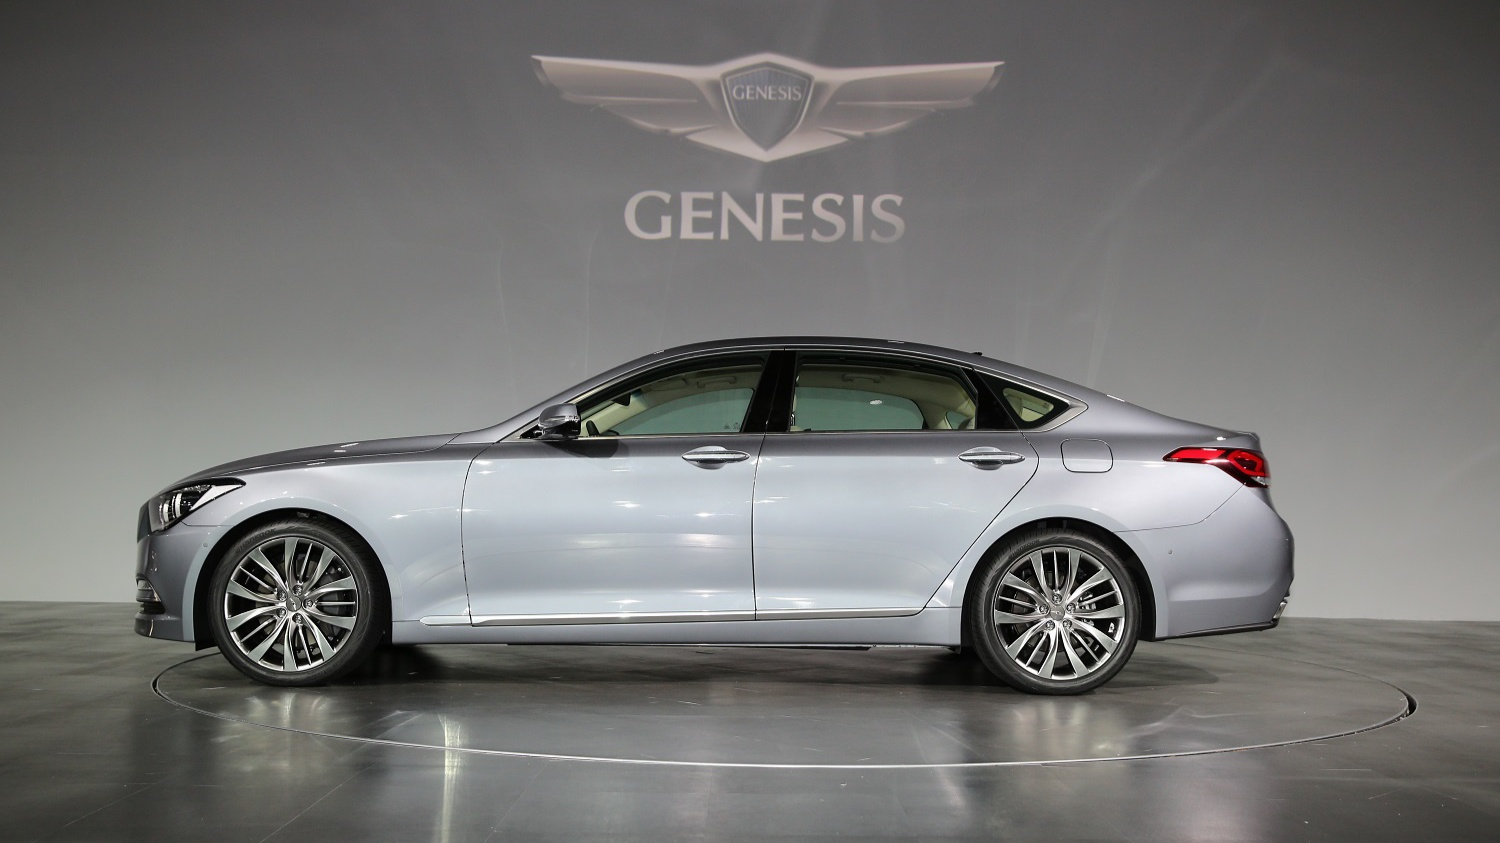 all-new Genesis at the launch event 2